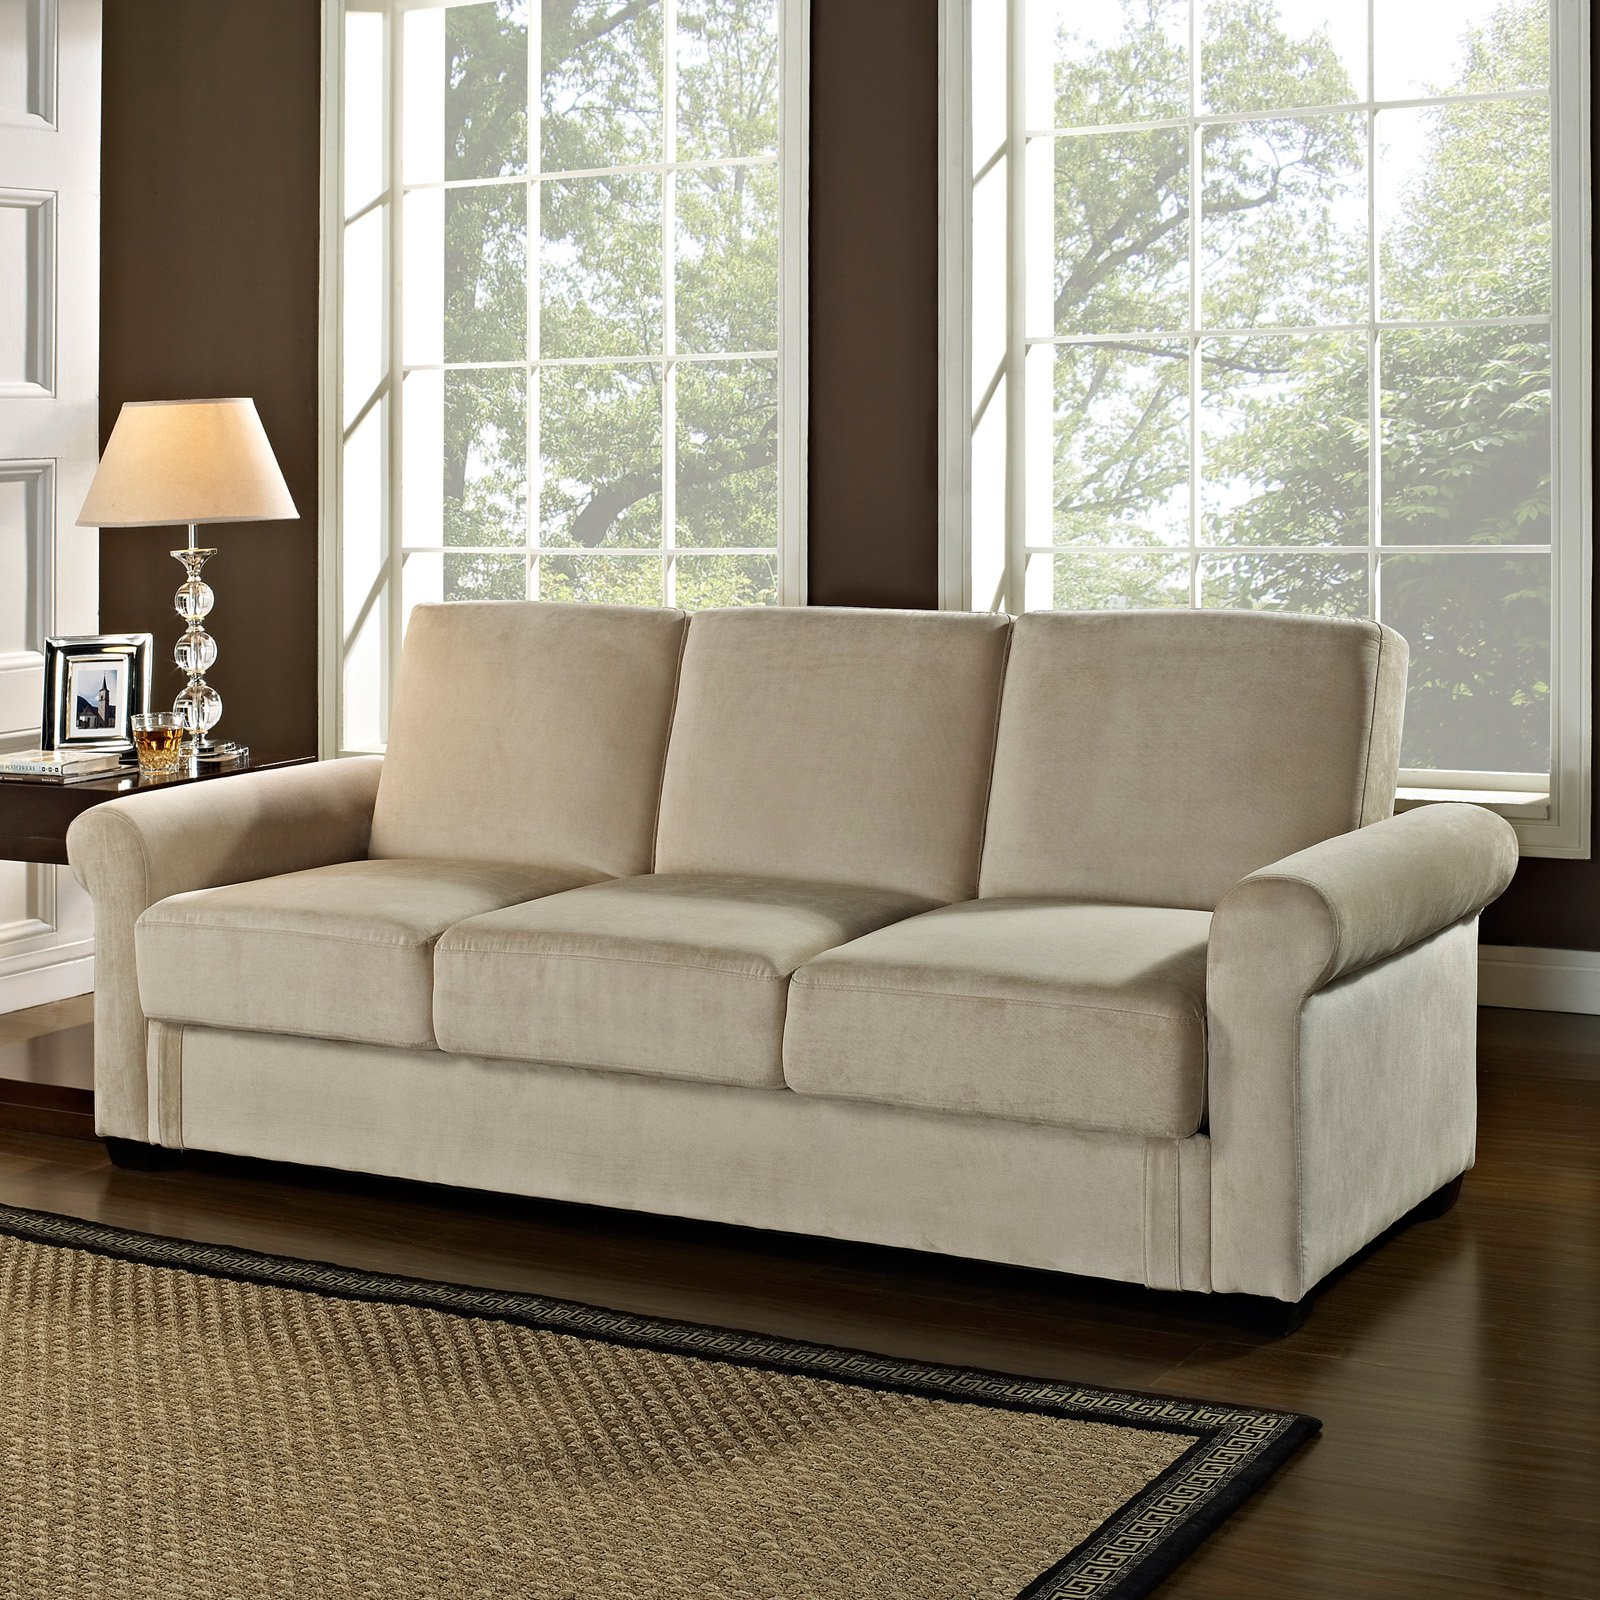 serta dream thomas convertible sofa - light brown - futons at hayneedle XJVNIYN